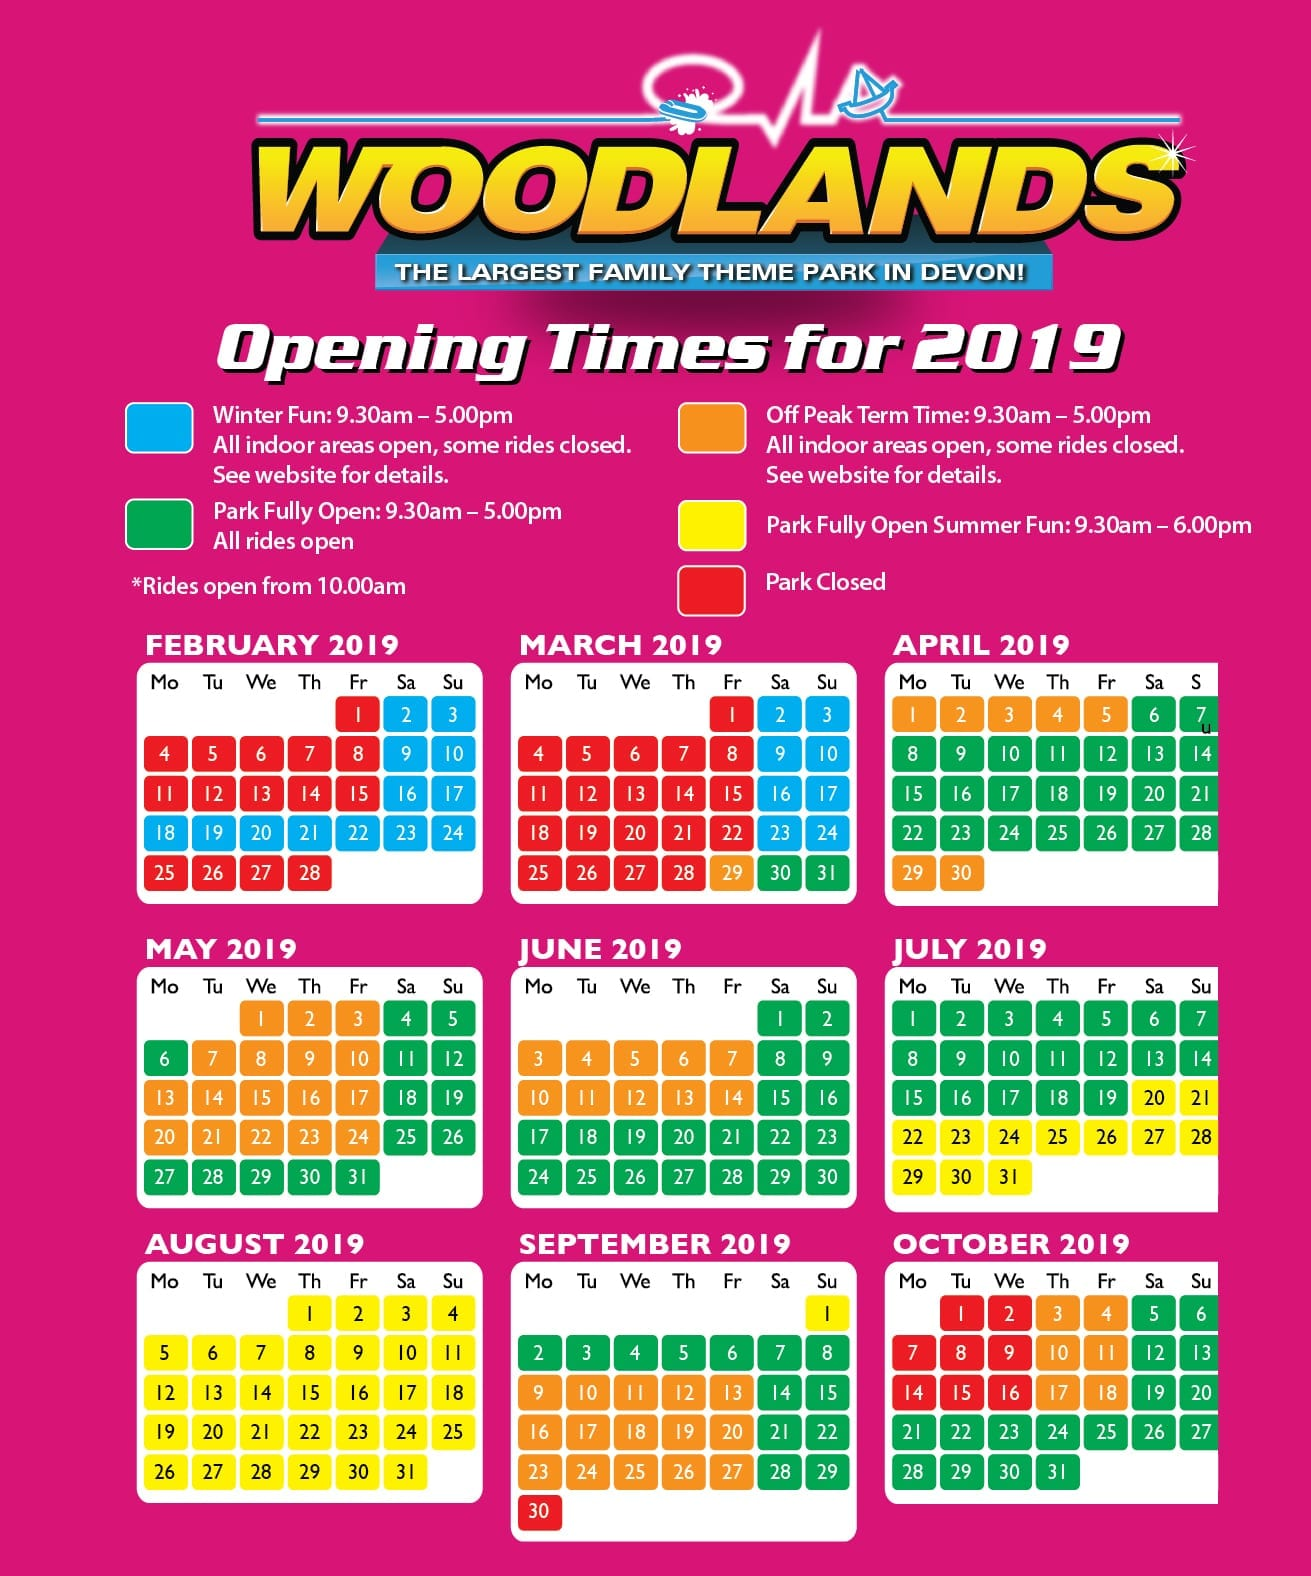 Woodlands opening times